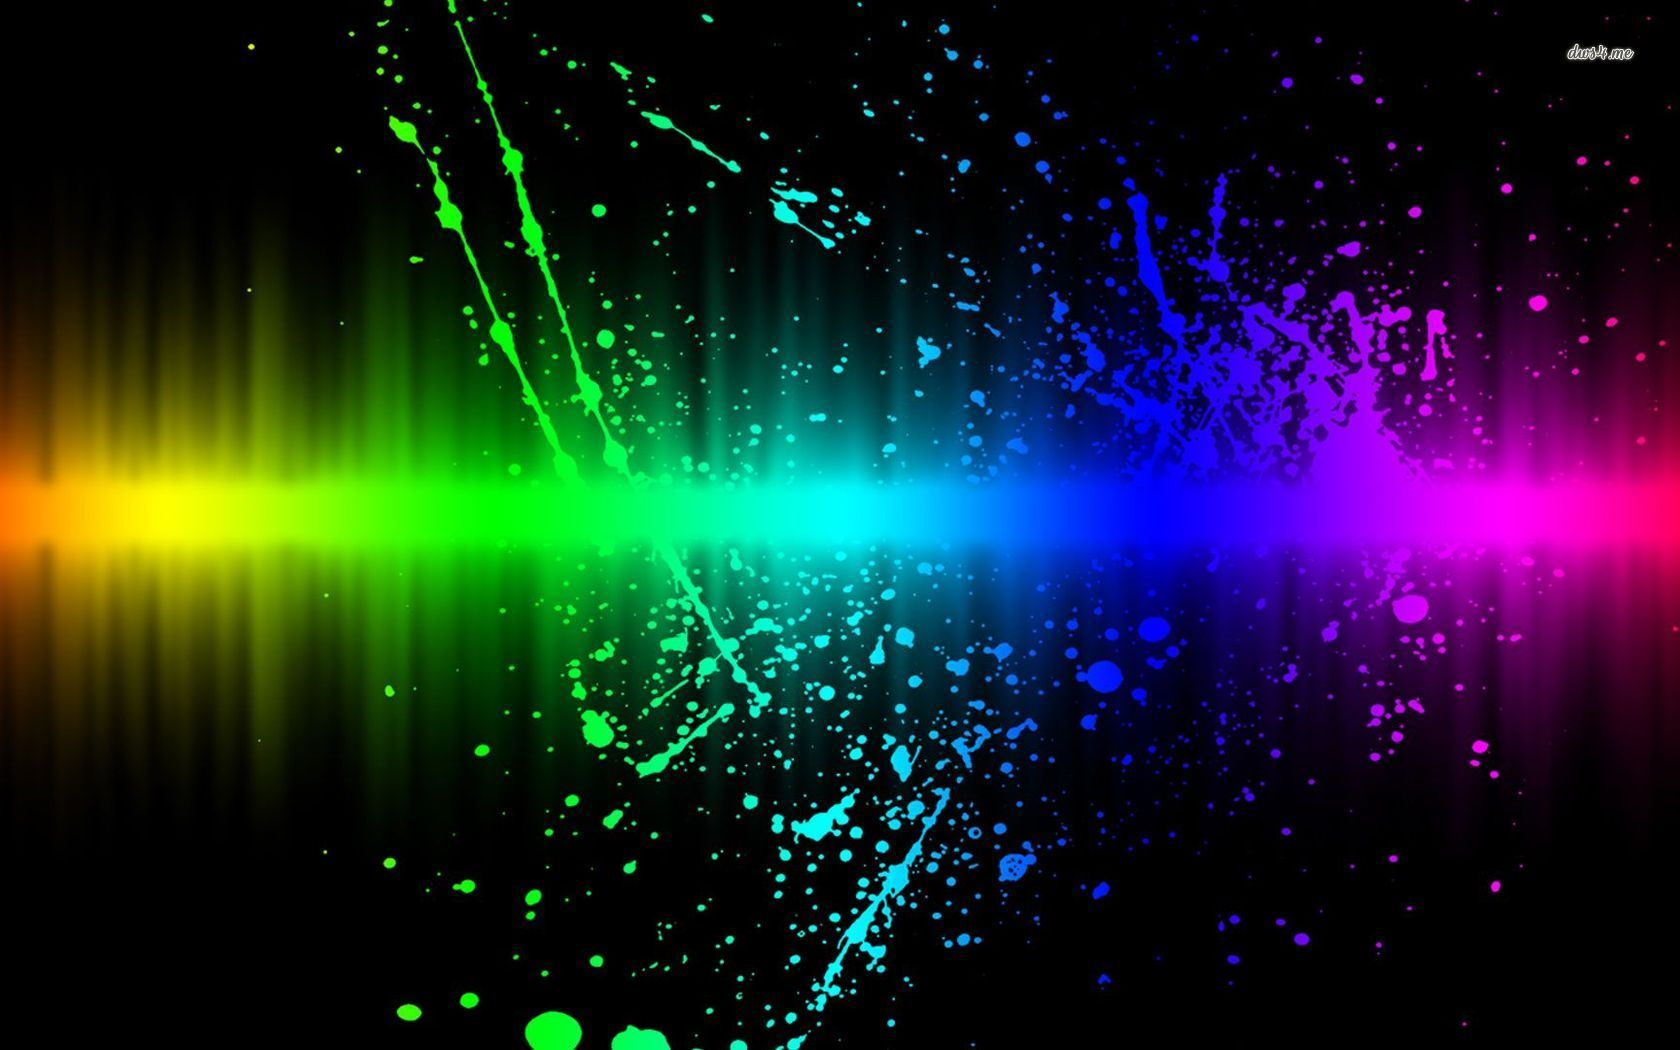 Rainbow Splash Hd Wallpaper With Images Rainbow Wallpaper